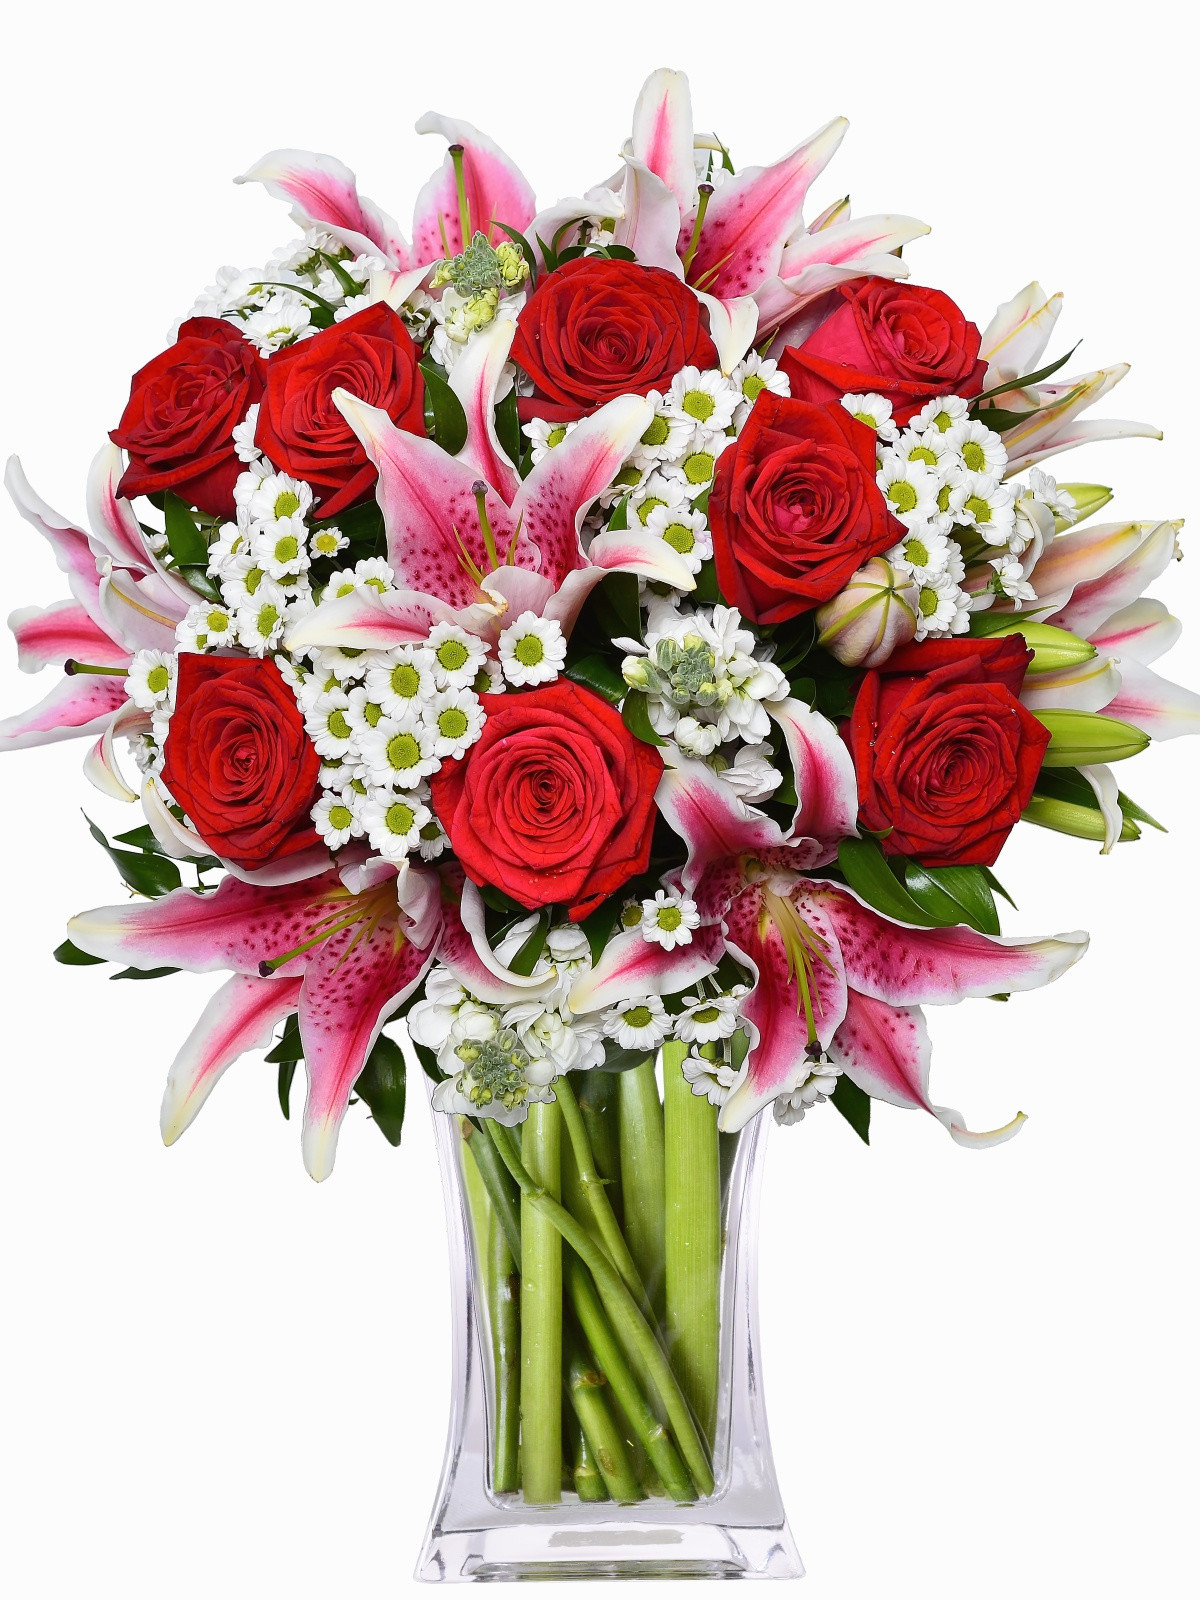 Fresh Flowers Delivery Express Czech Republic 5 Fresh How Much Does It Cost to Send